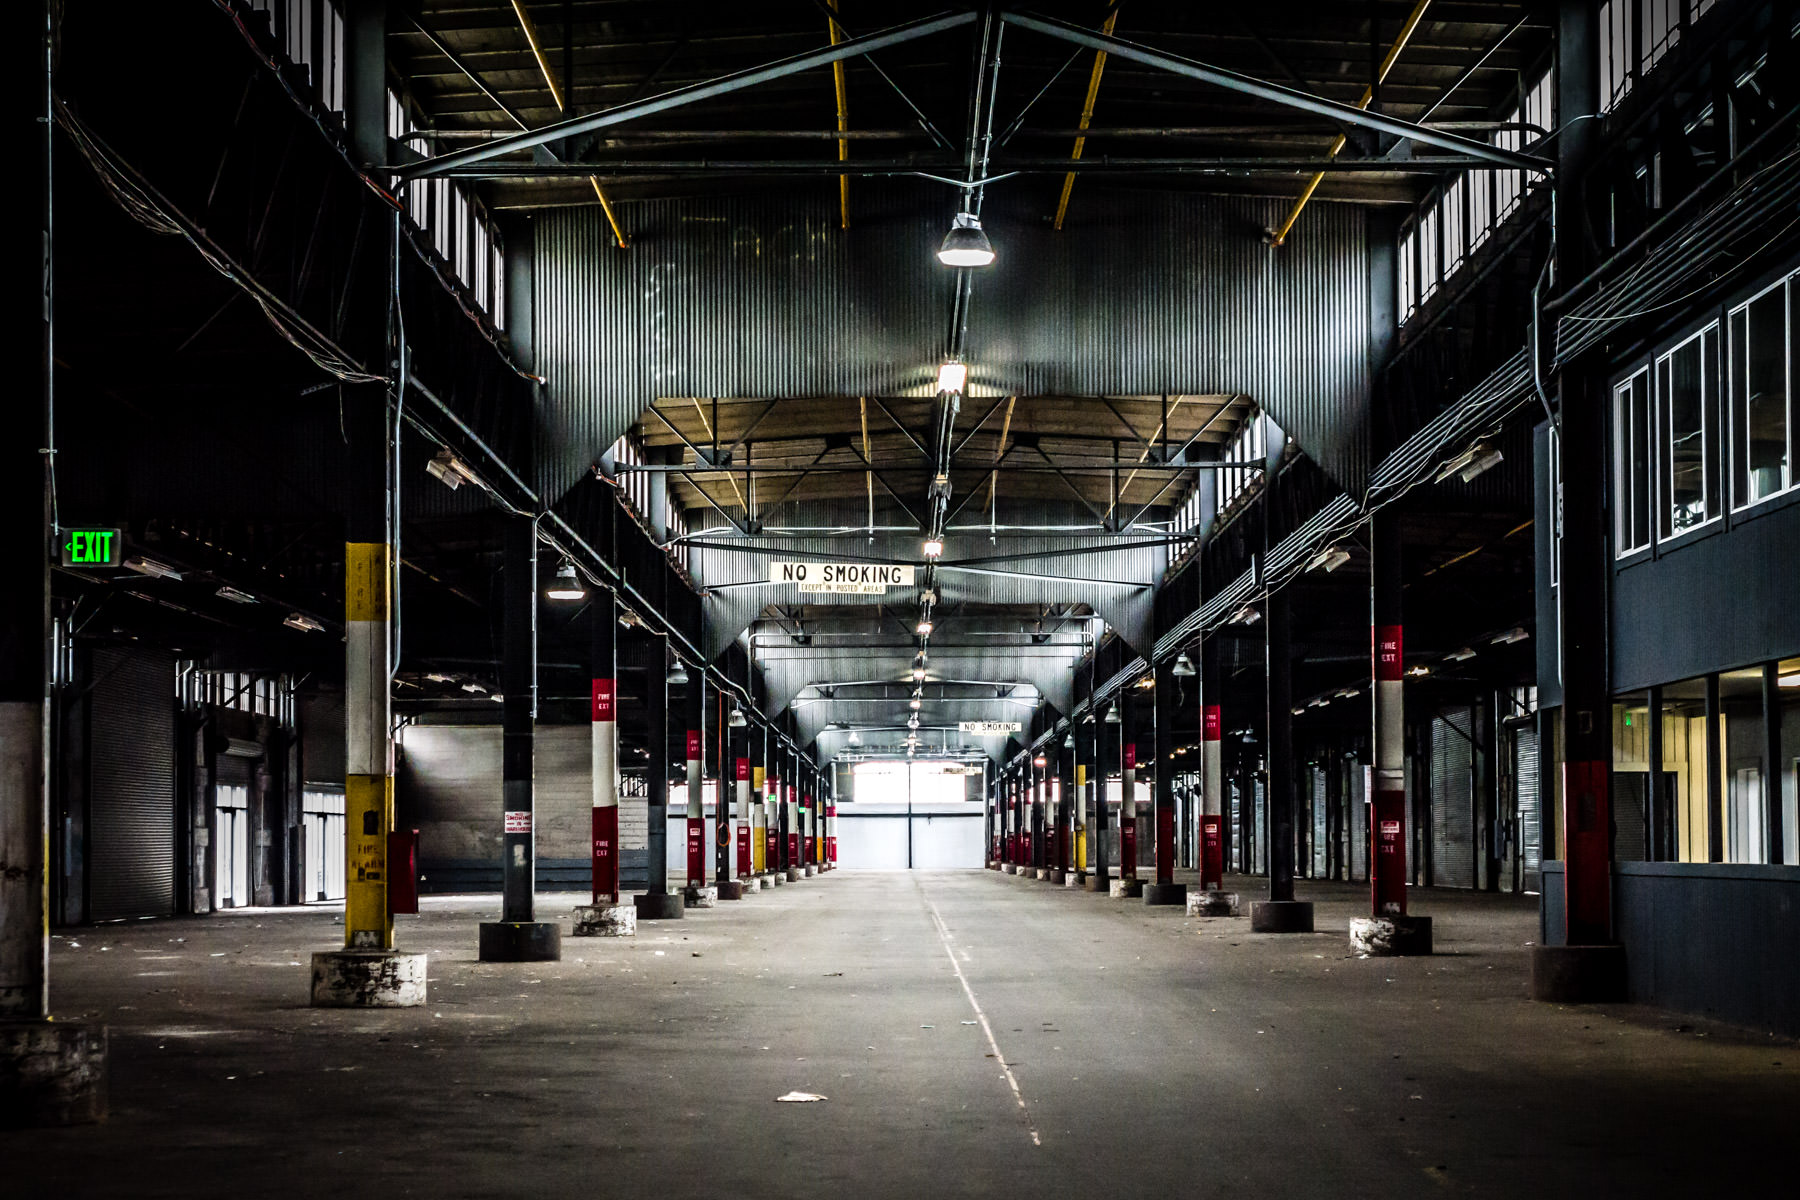 The empty interior of San Francisco's Pier 23 as seen from the main entrance along The Embarcadero.